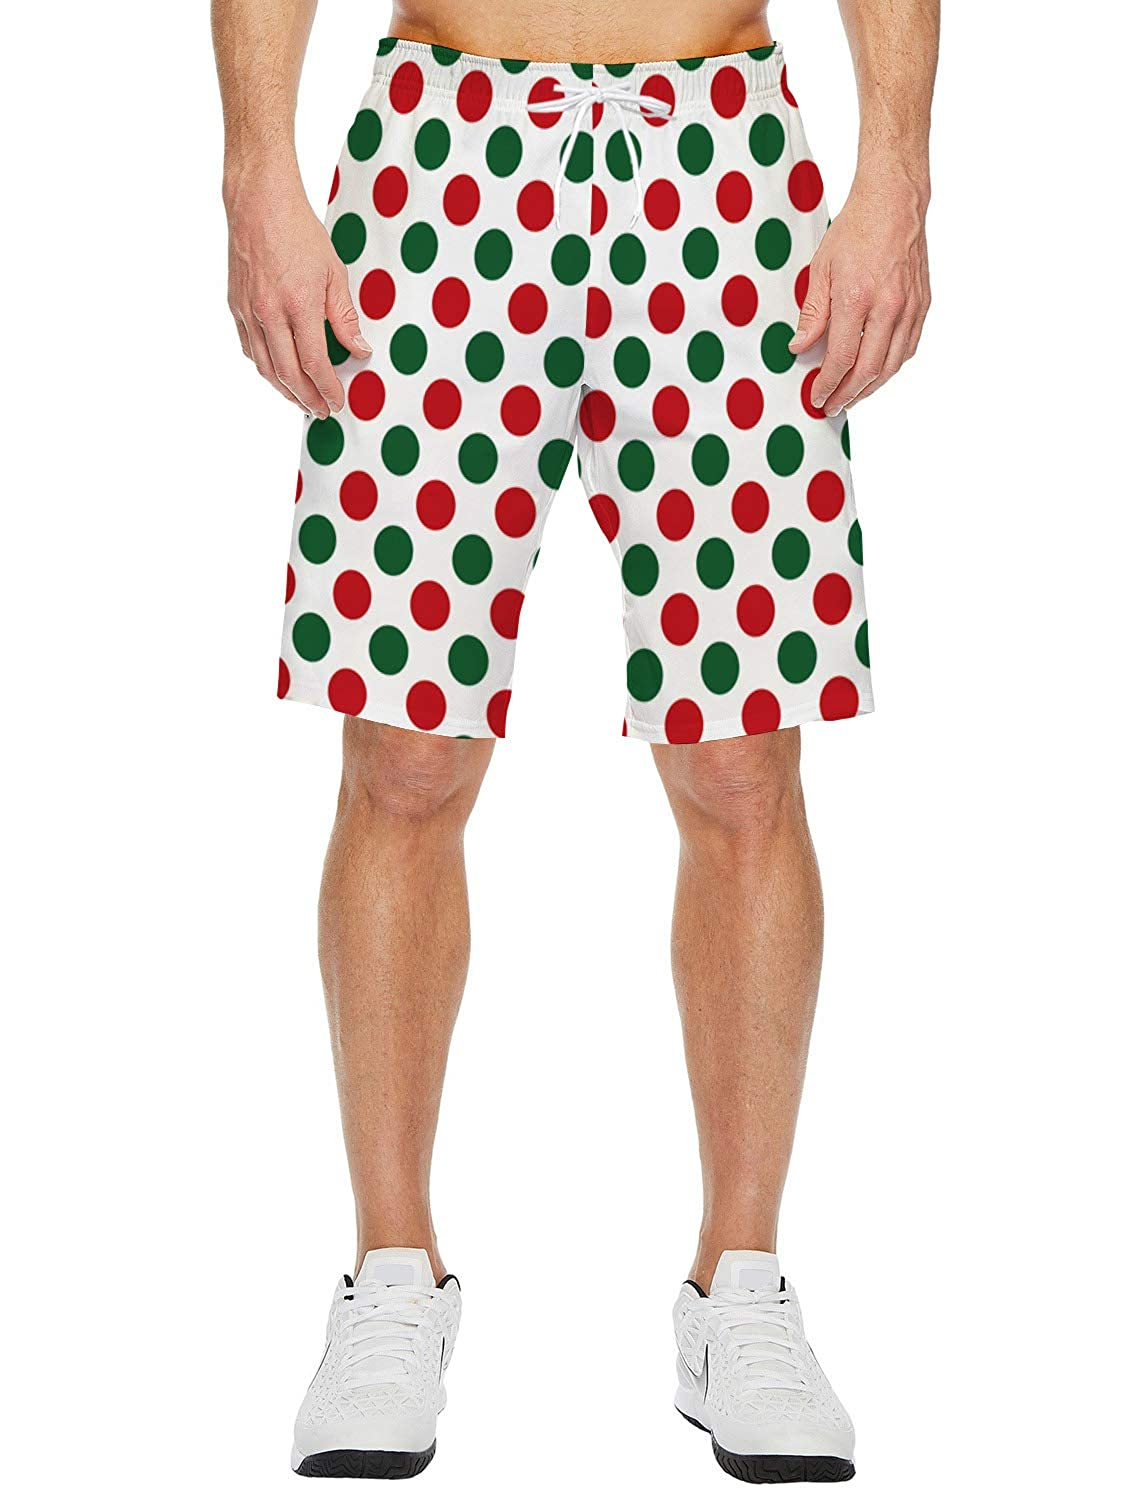 Polka Dot RortyM Mens Beach Short Elastic Waist Quick Dry Swim Trunks Mesh Lining